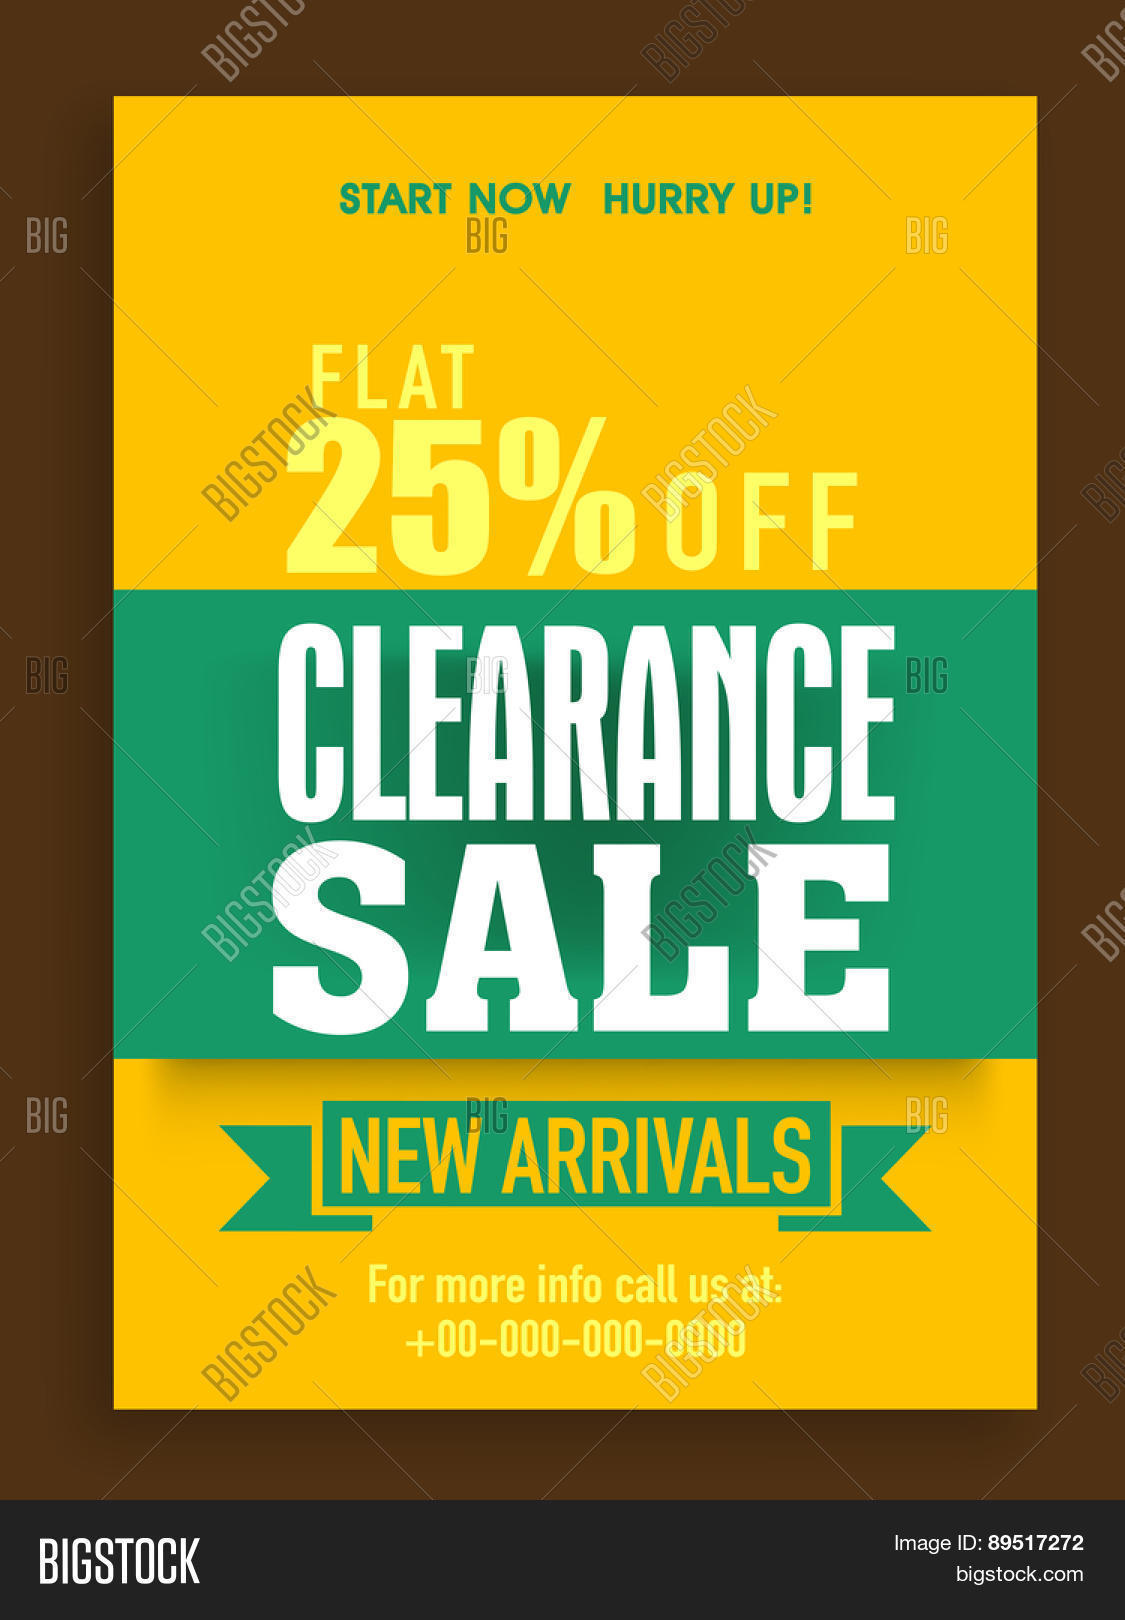 brochure flyer or poster design 25% flat offer on clearance brochure flyer or poster design 25% flat offer on clearance